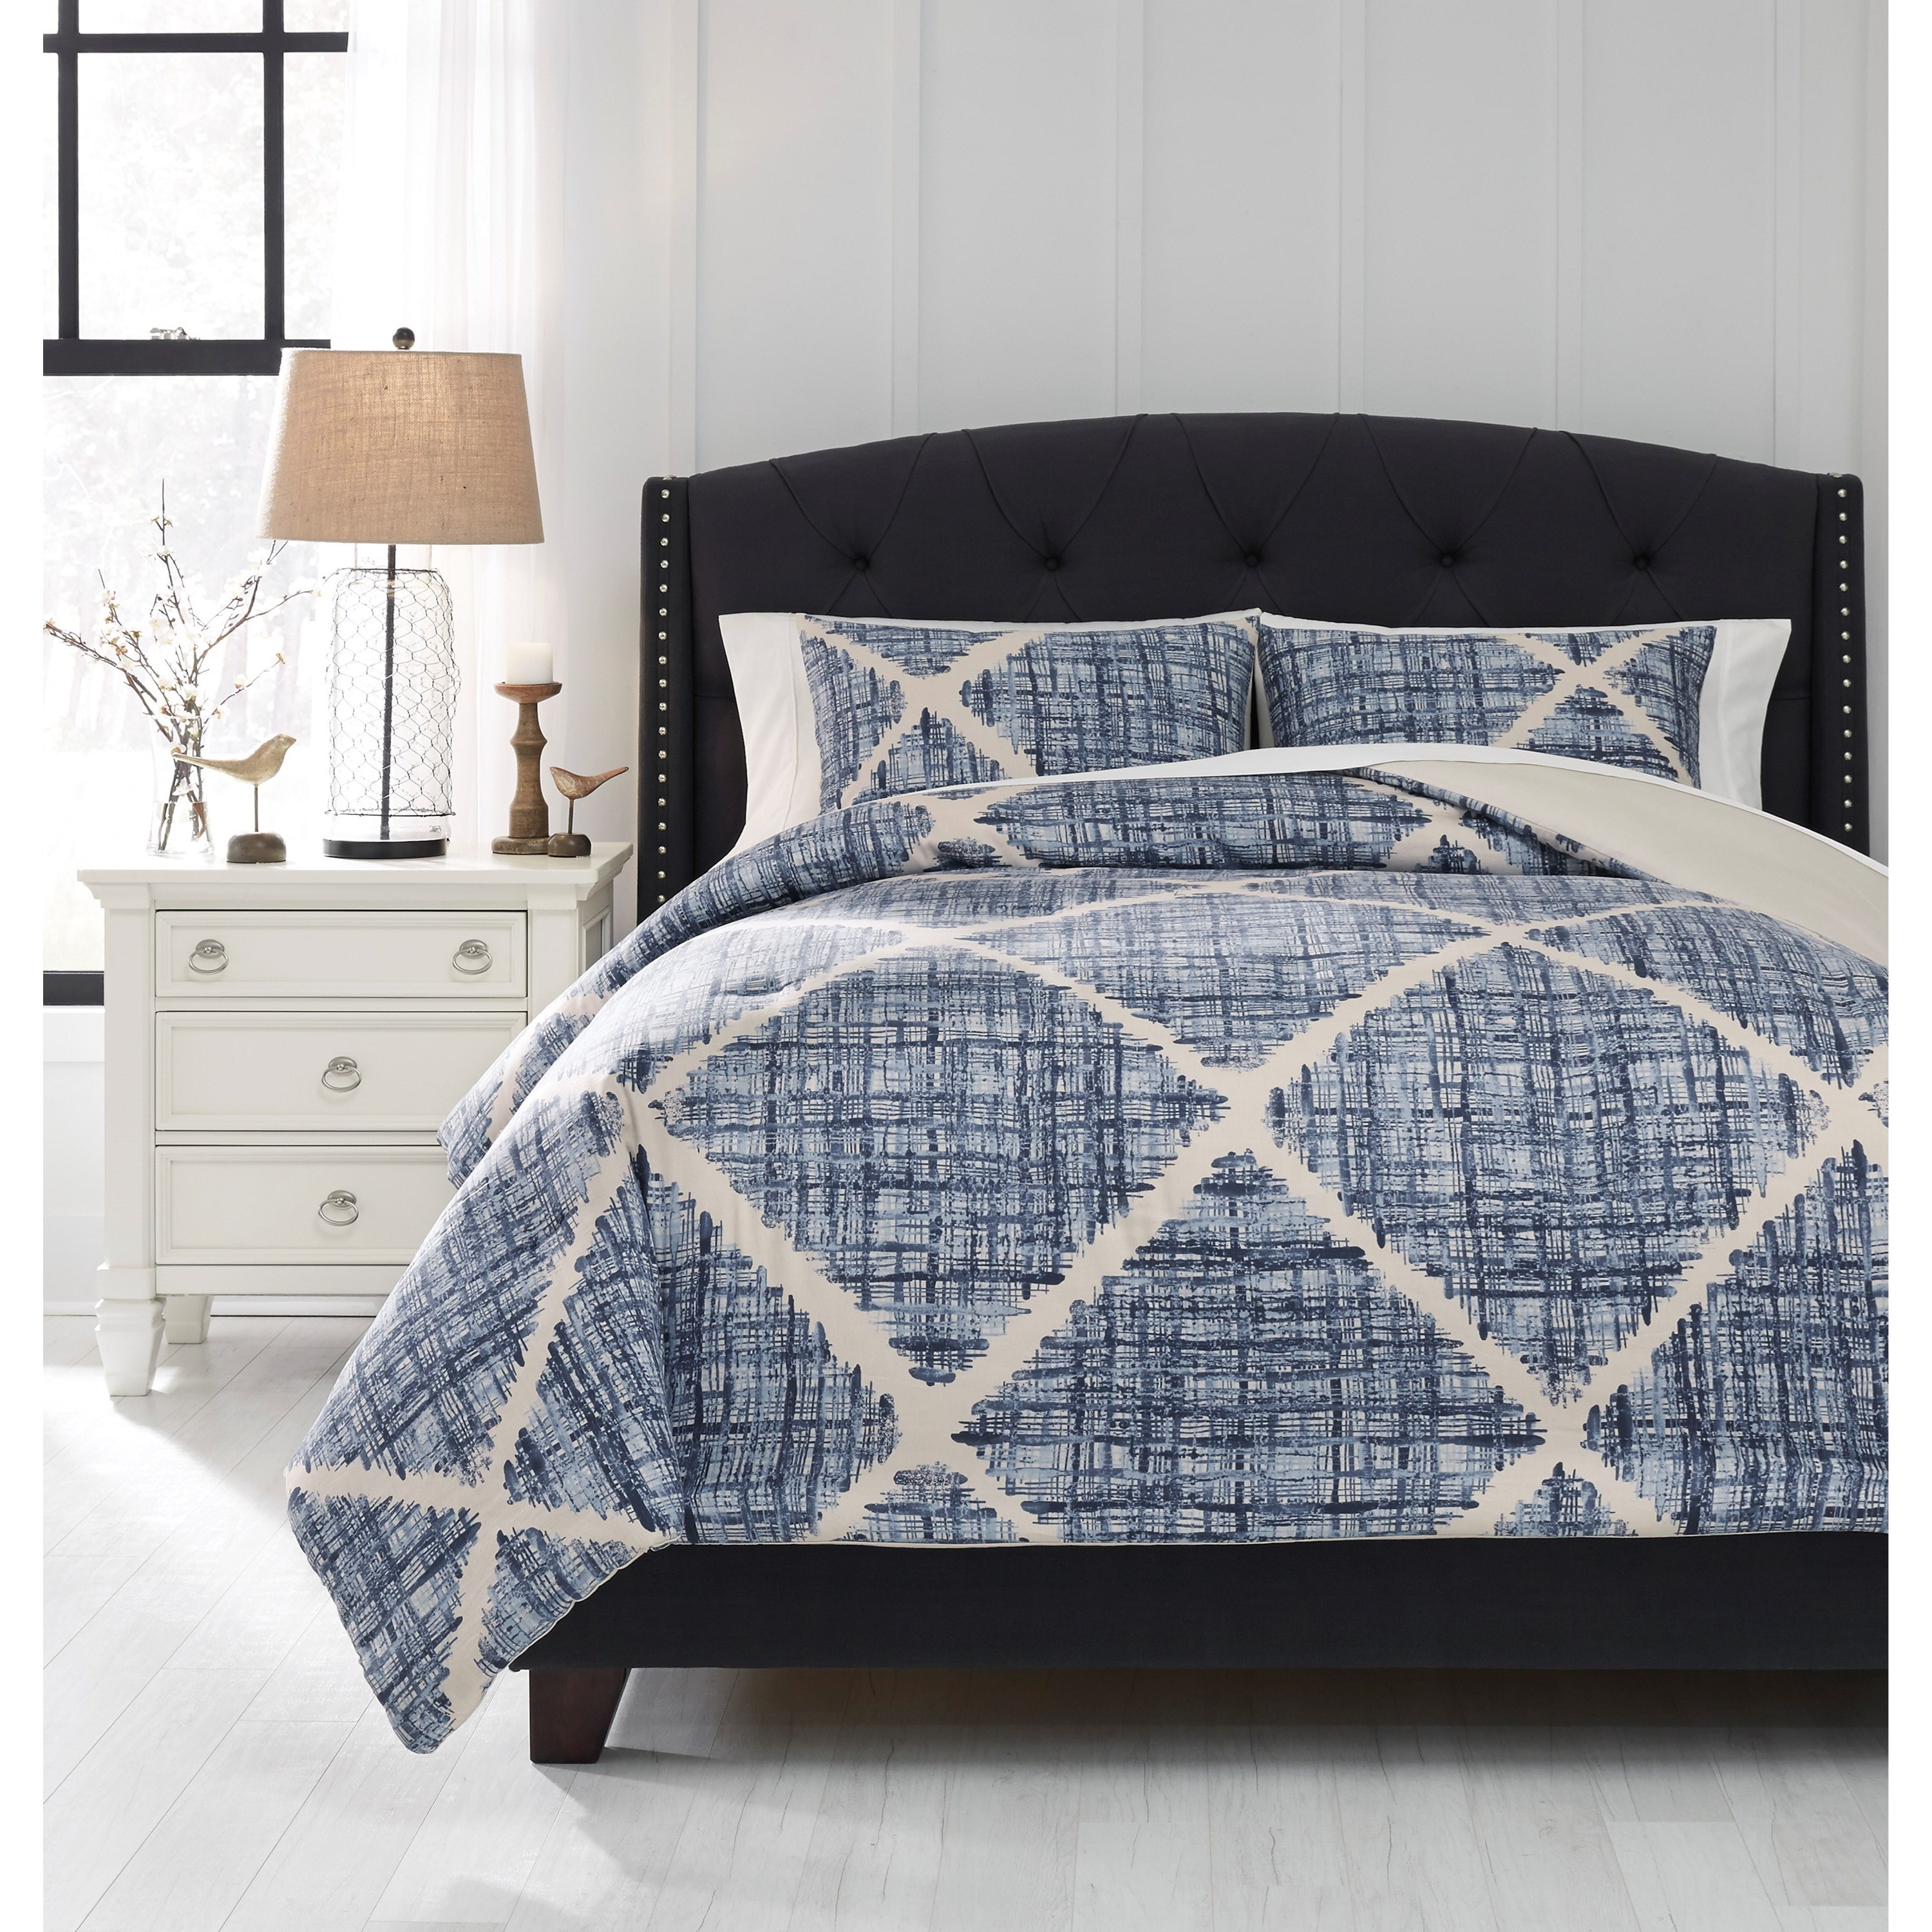 Bedding Sets Queen Sladen Blue/Cream Comforter Set by Signature Design at Fisher Home Furnishings